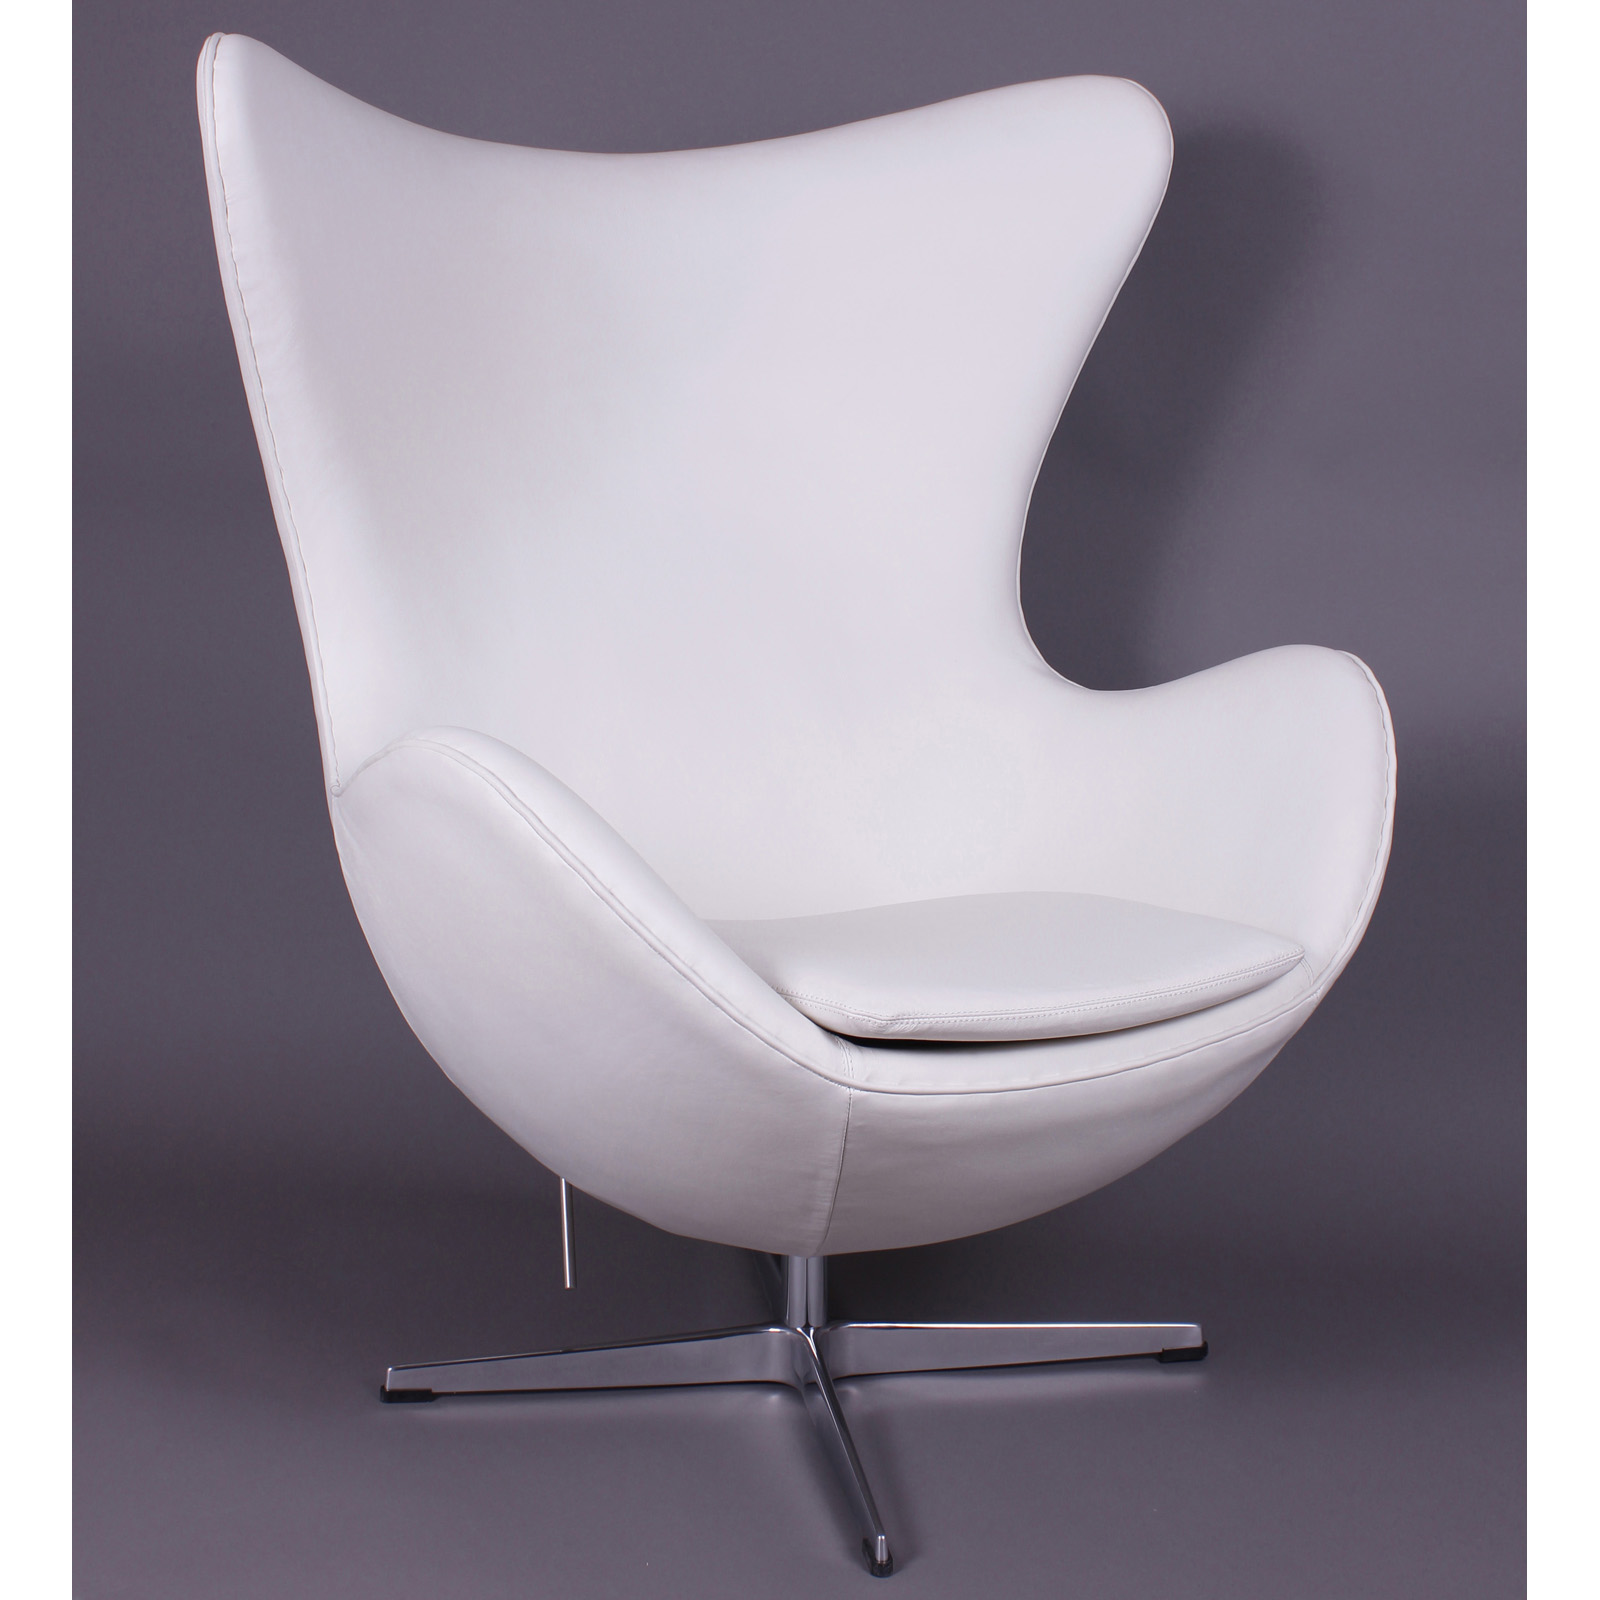 Baby Egg Chair Control Brand Jacobsen Egg Chair At Hayneedle